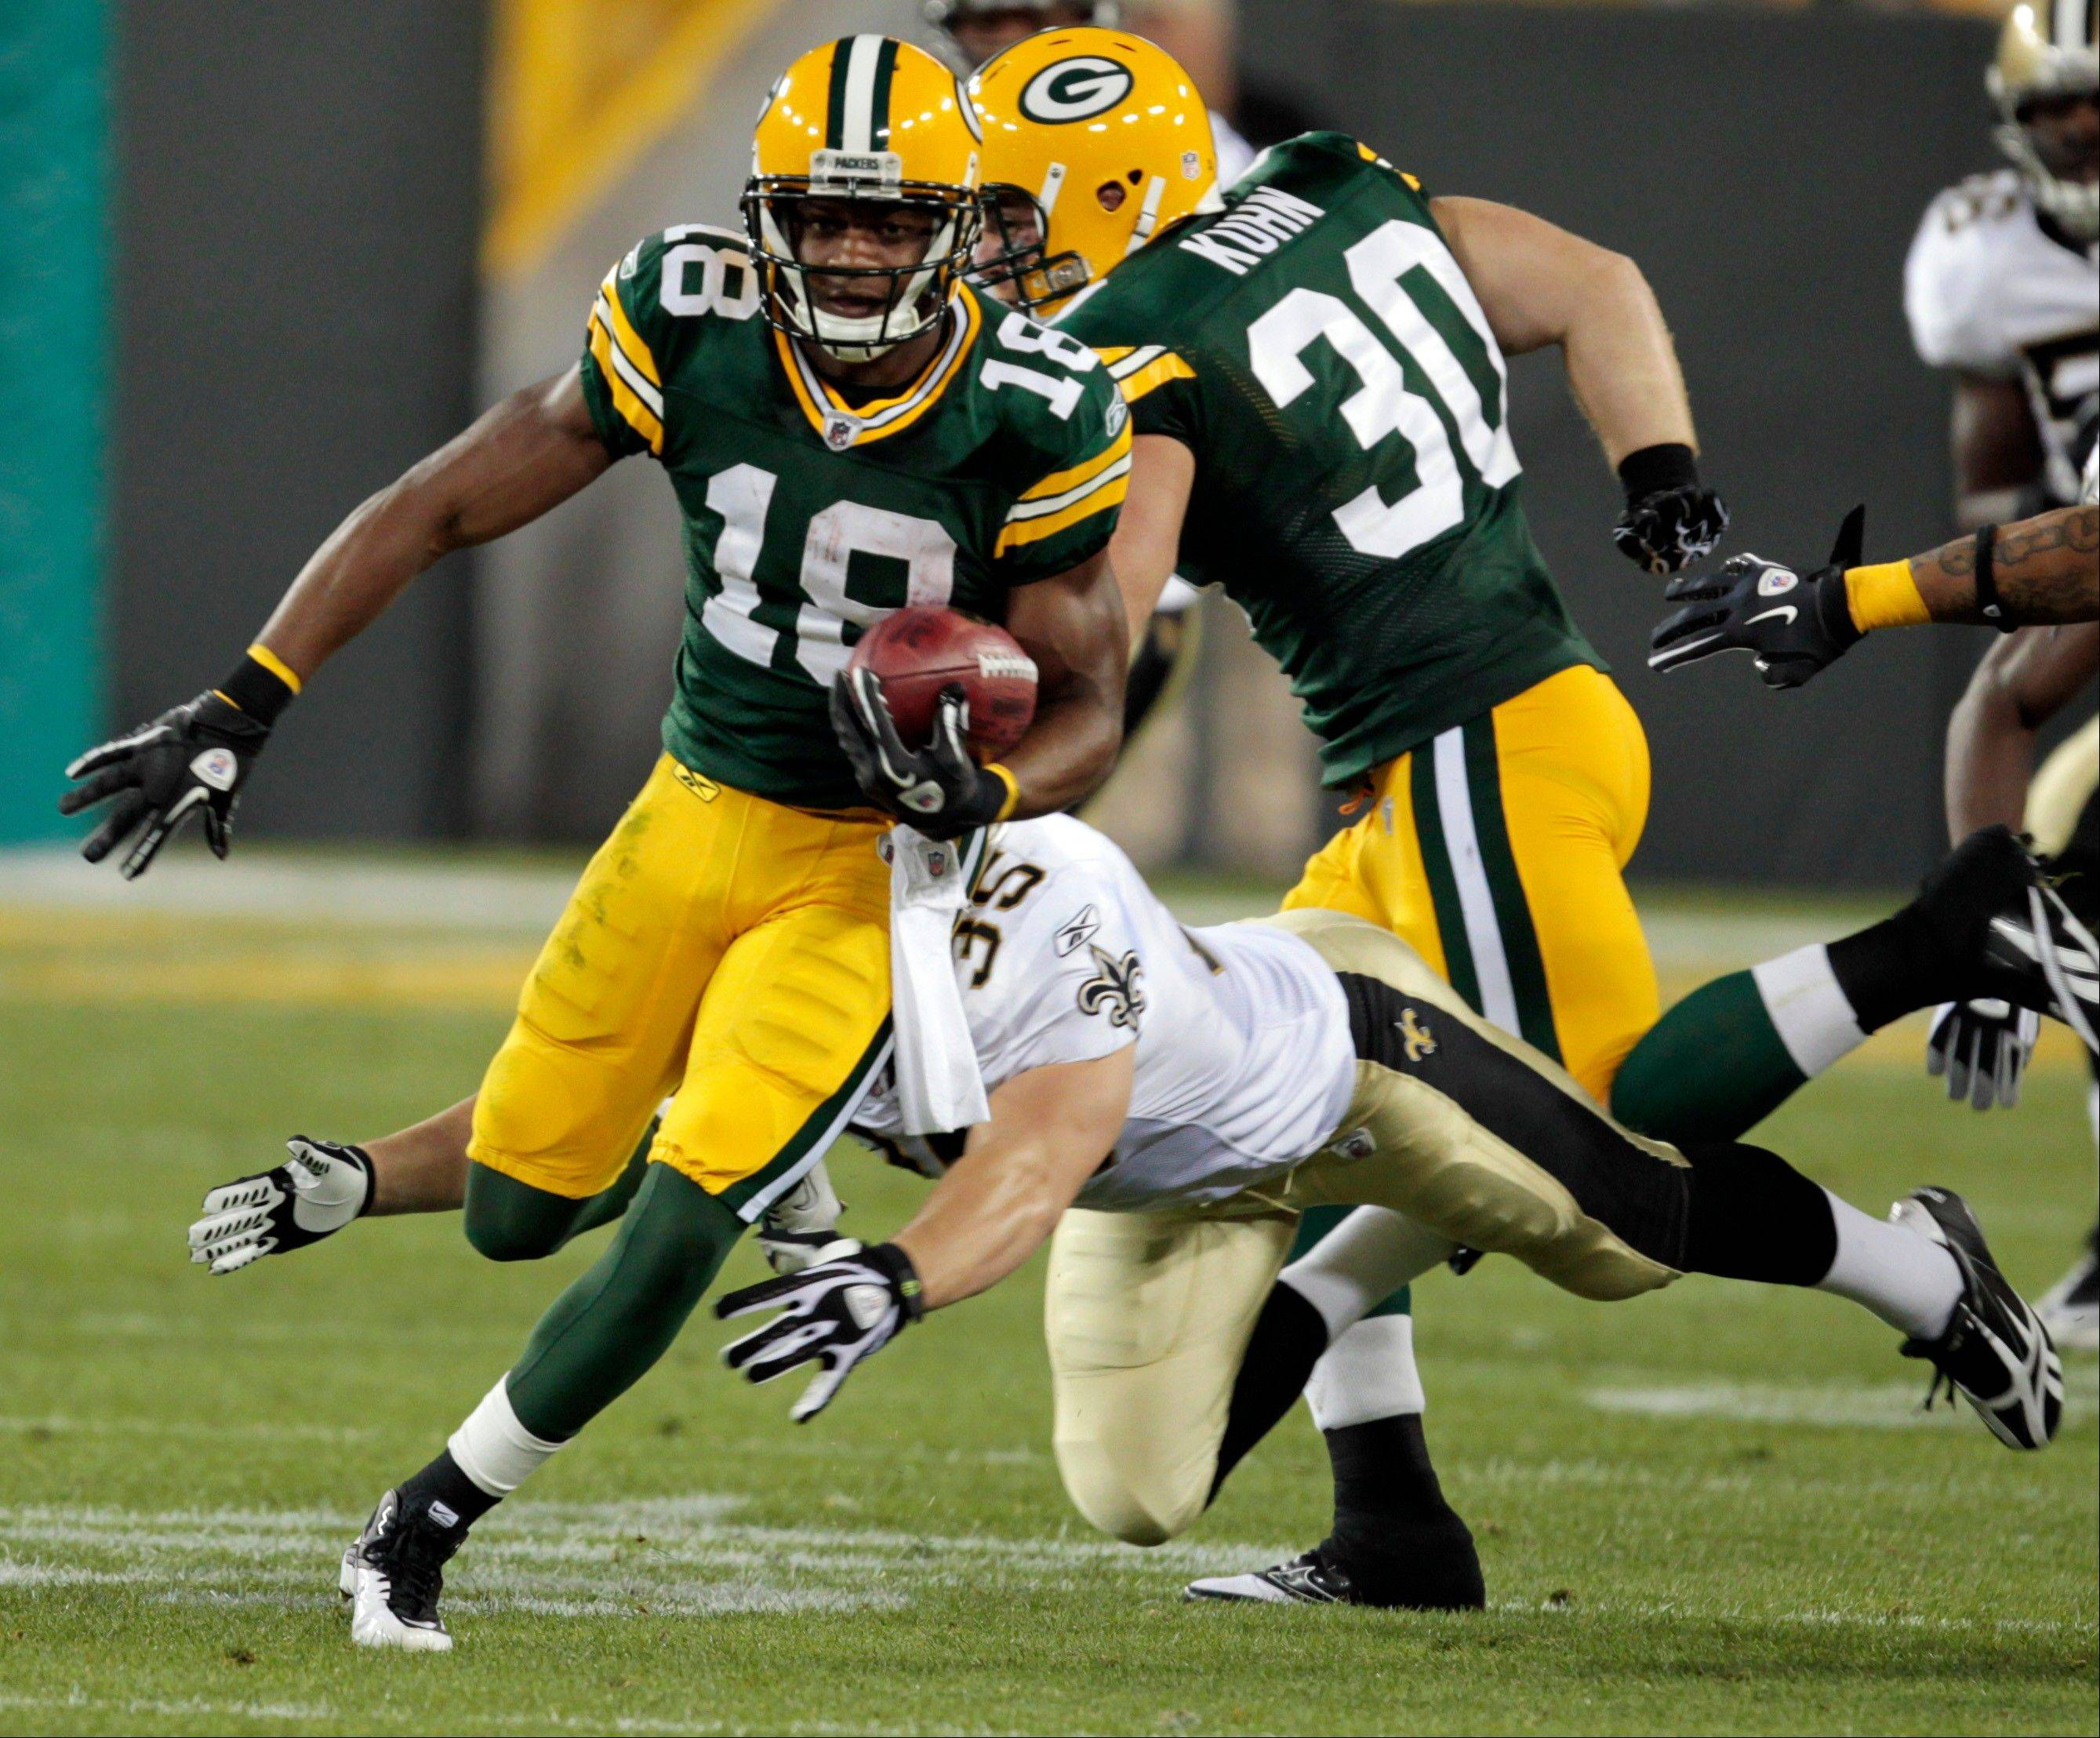 The Green Bay Packers' Randall Cobb gets past New Orleans Saints' Korey Hall during his 108-yard kickoff return